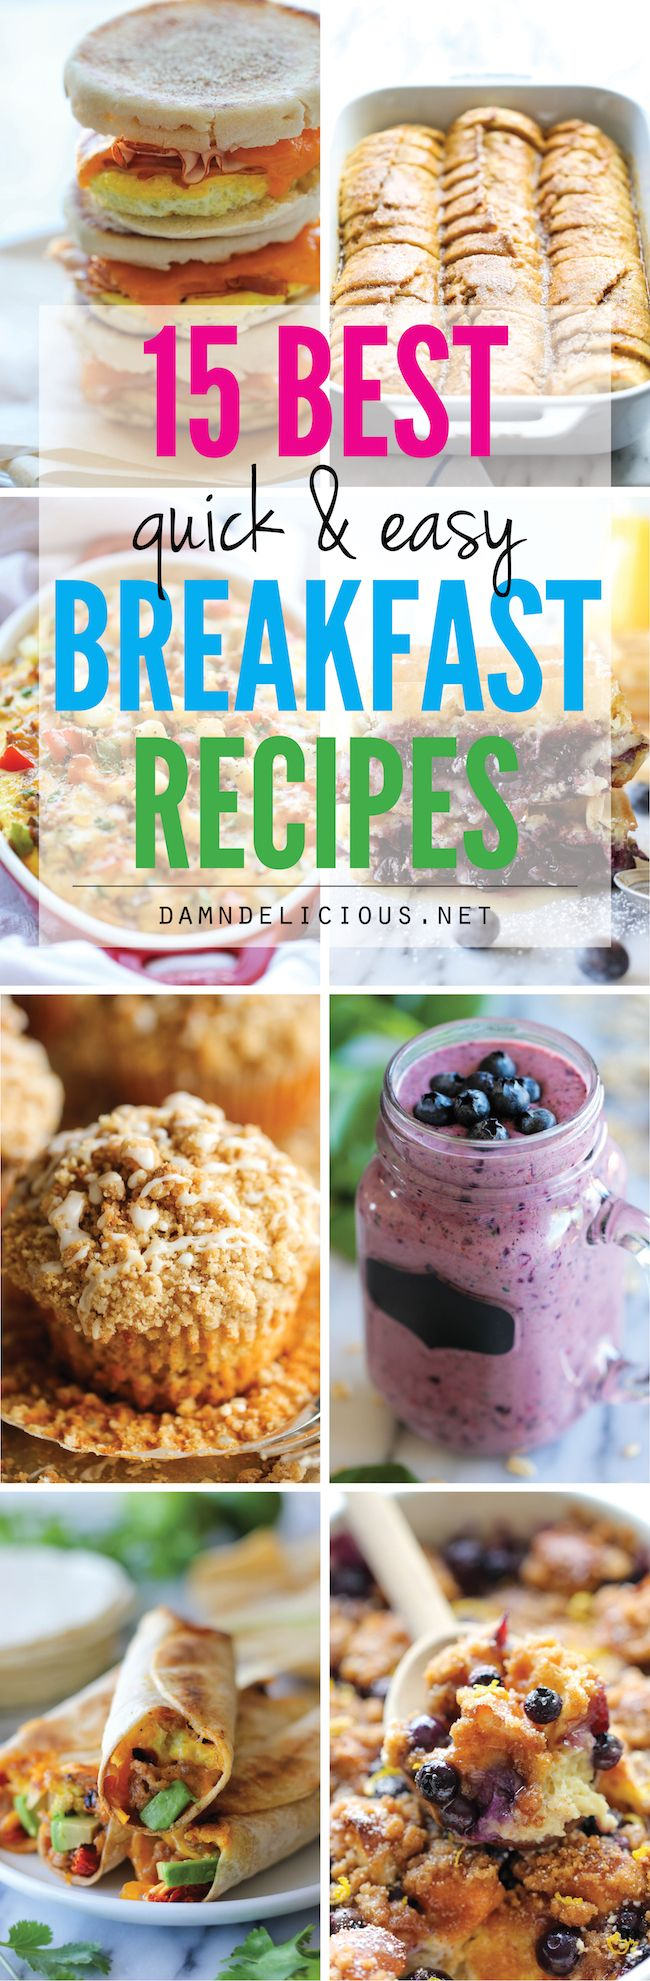 15 Best Quick and Easy Breakfast Recipes